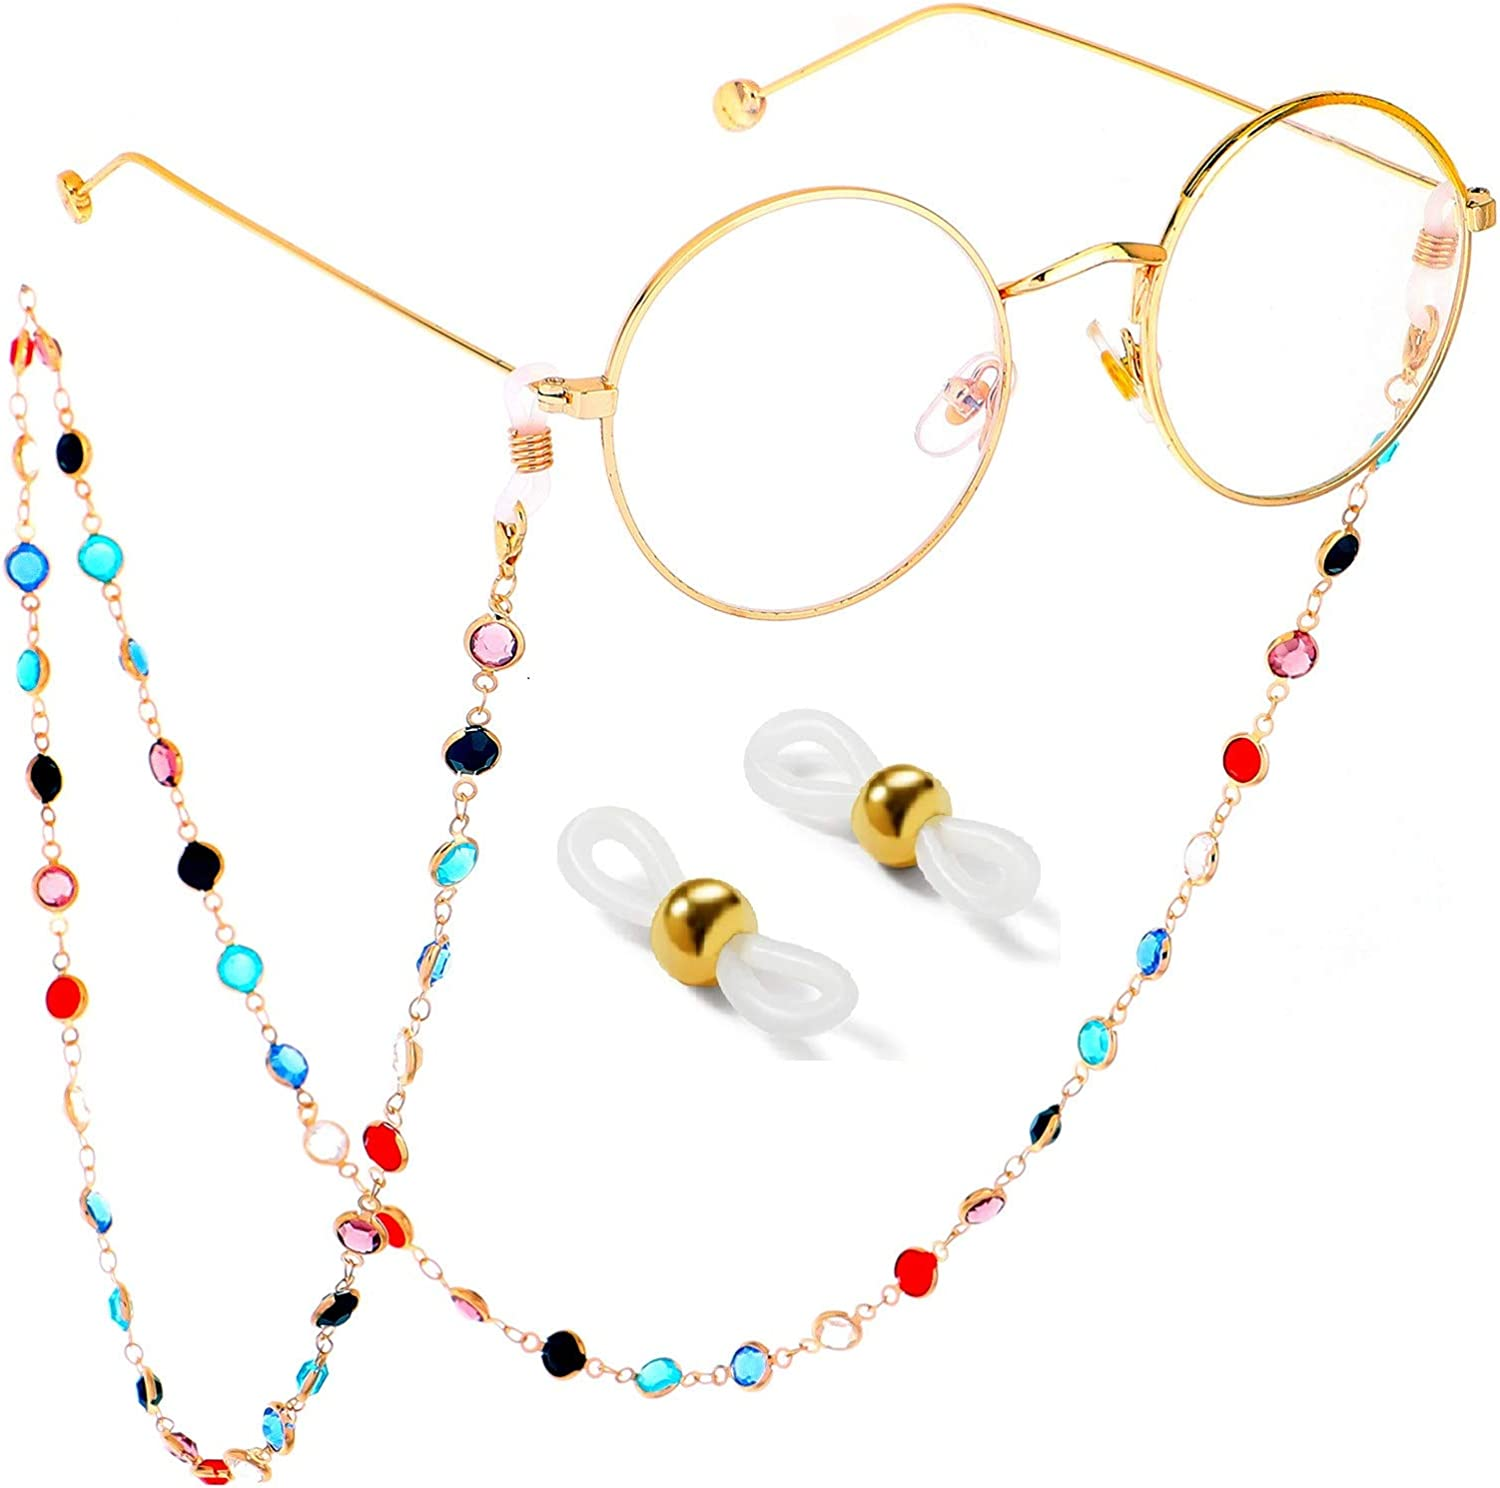 VINCHIC Colorful Beaded Eyeglass 67% OFF of fixed price Chain Strap Sunglass Eye Memphis Mall Holder